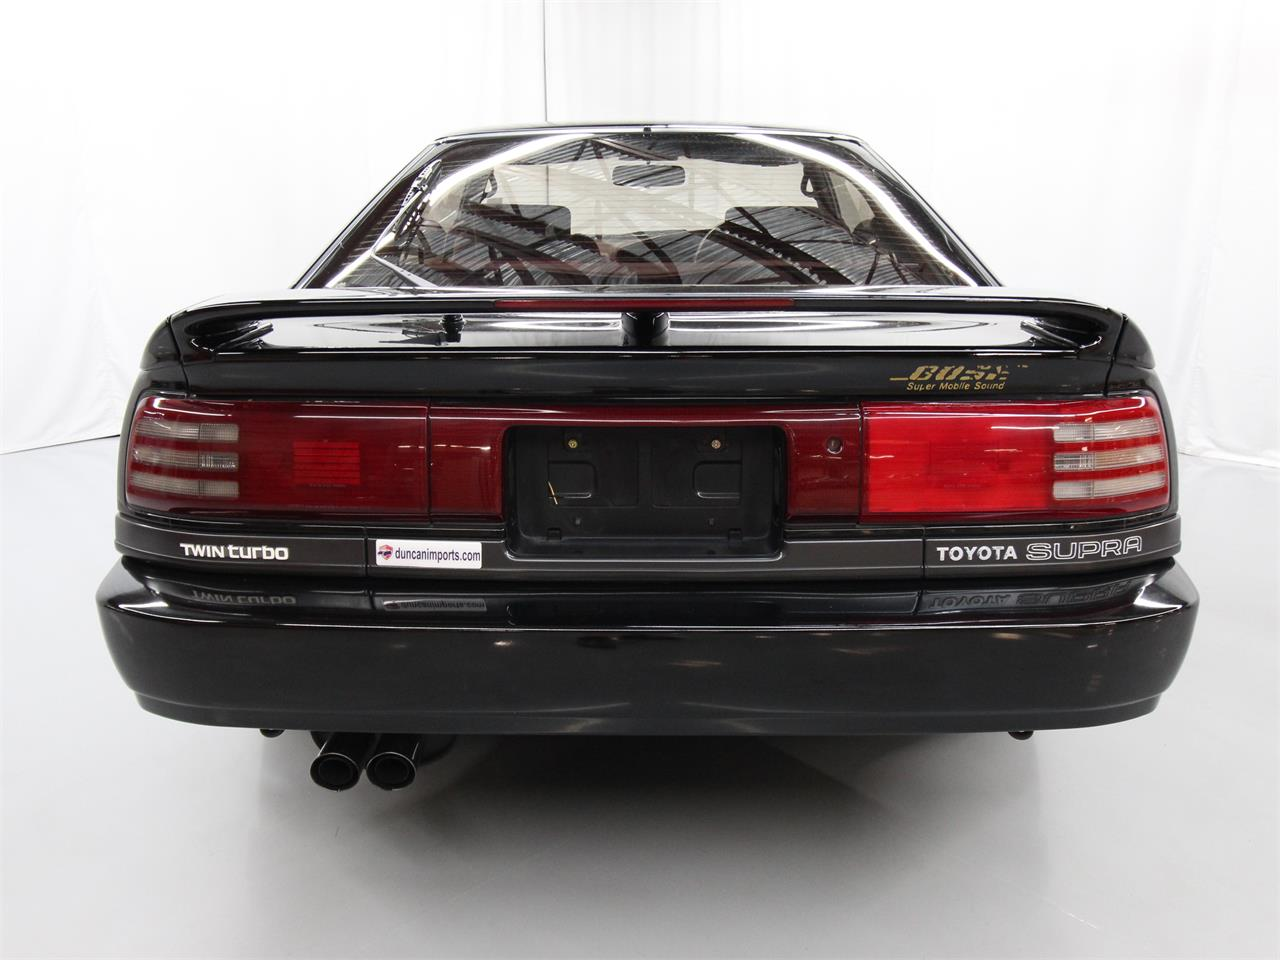 Large Picture of 1991 Toyota Supra located in Virginia - $16,973.00 Offered by Duncan Imports & Classic Cars - Q9SQ